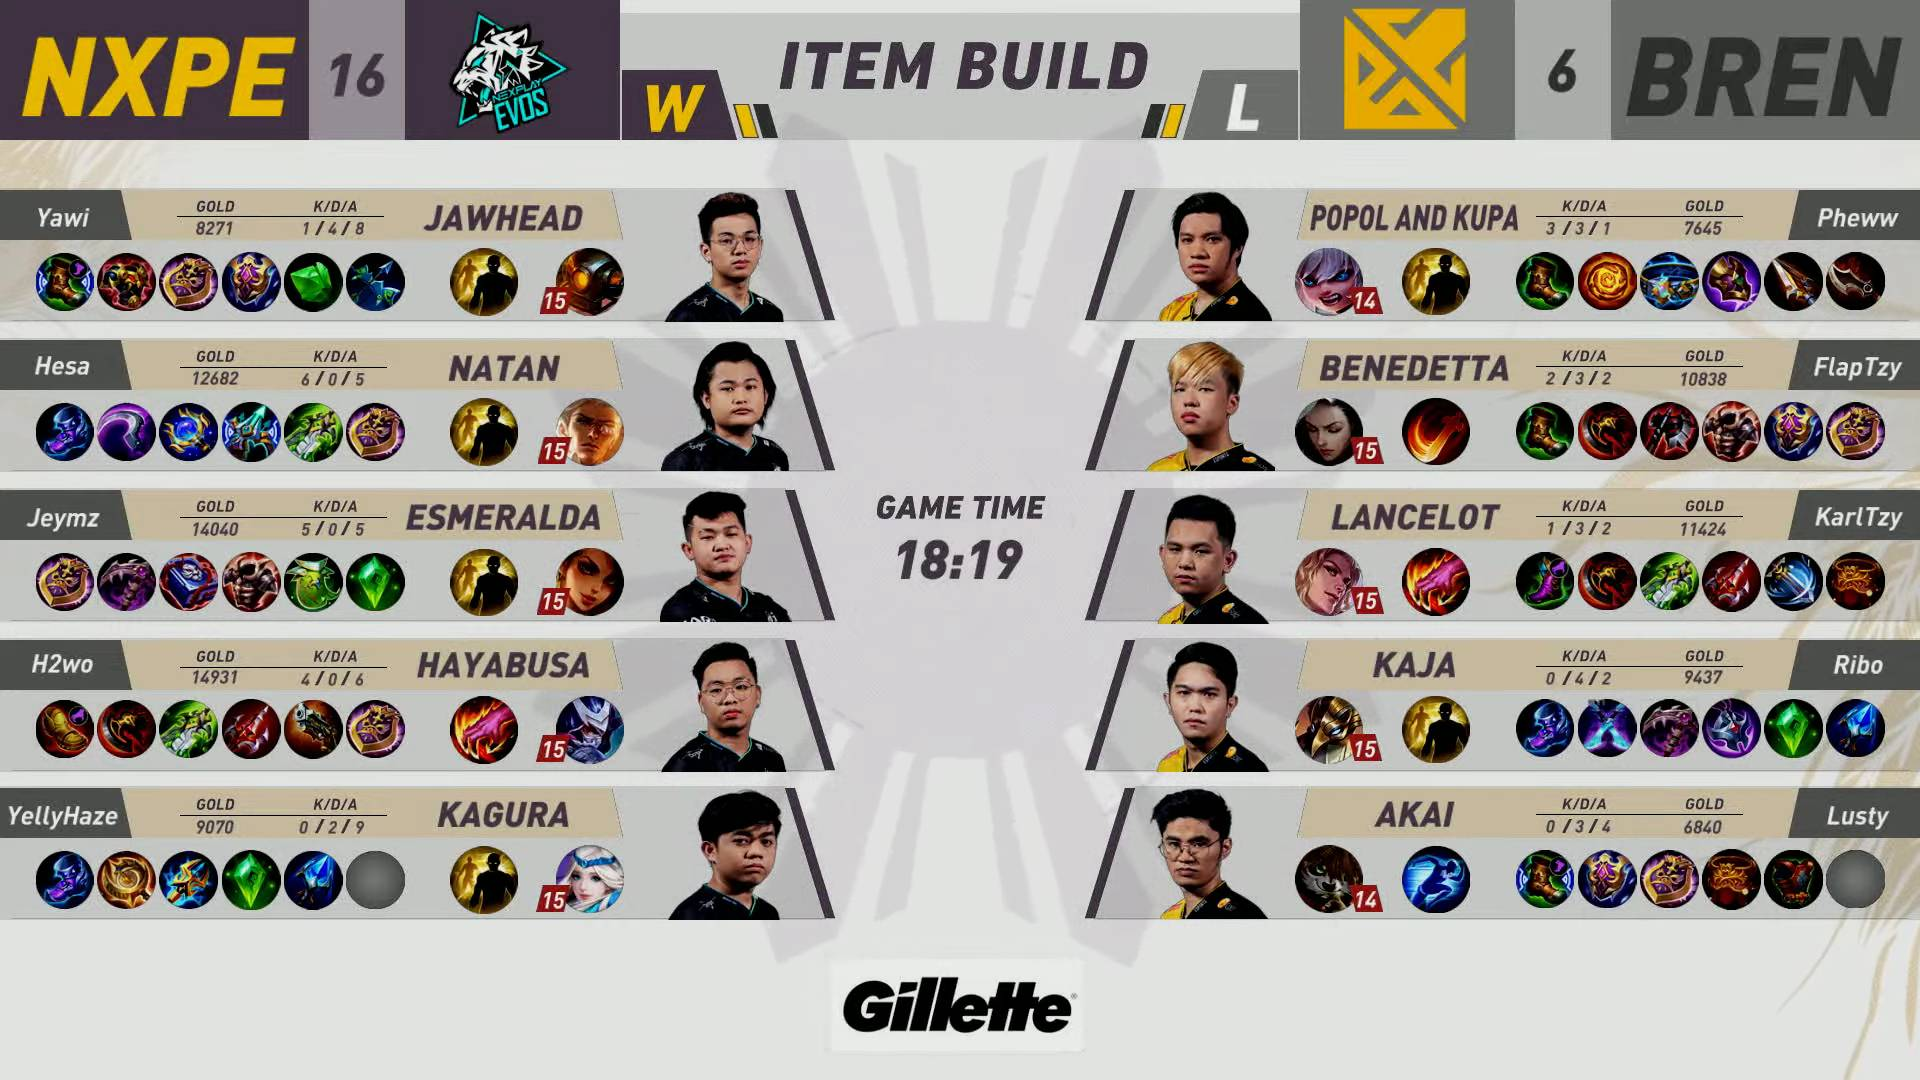 MPL-PH-8-Bren-def-NXPE-Game-2 Tzy bros defang NXPE, arrest Bren's skid in MPL PH ESports Mobile Legends MPL-PH News  - philippine sports news